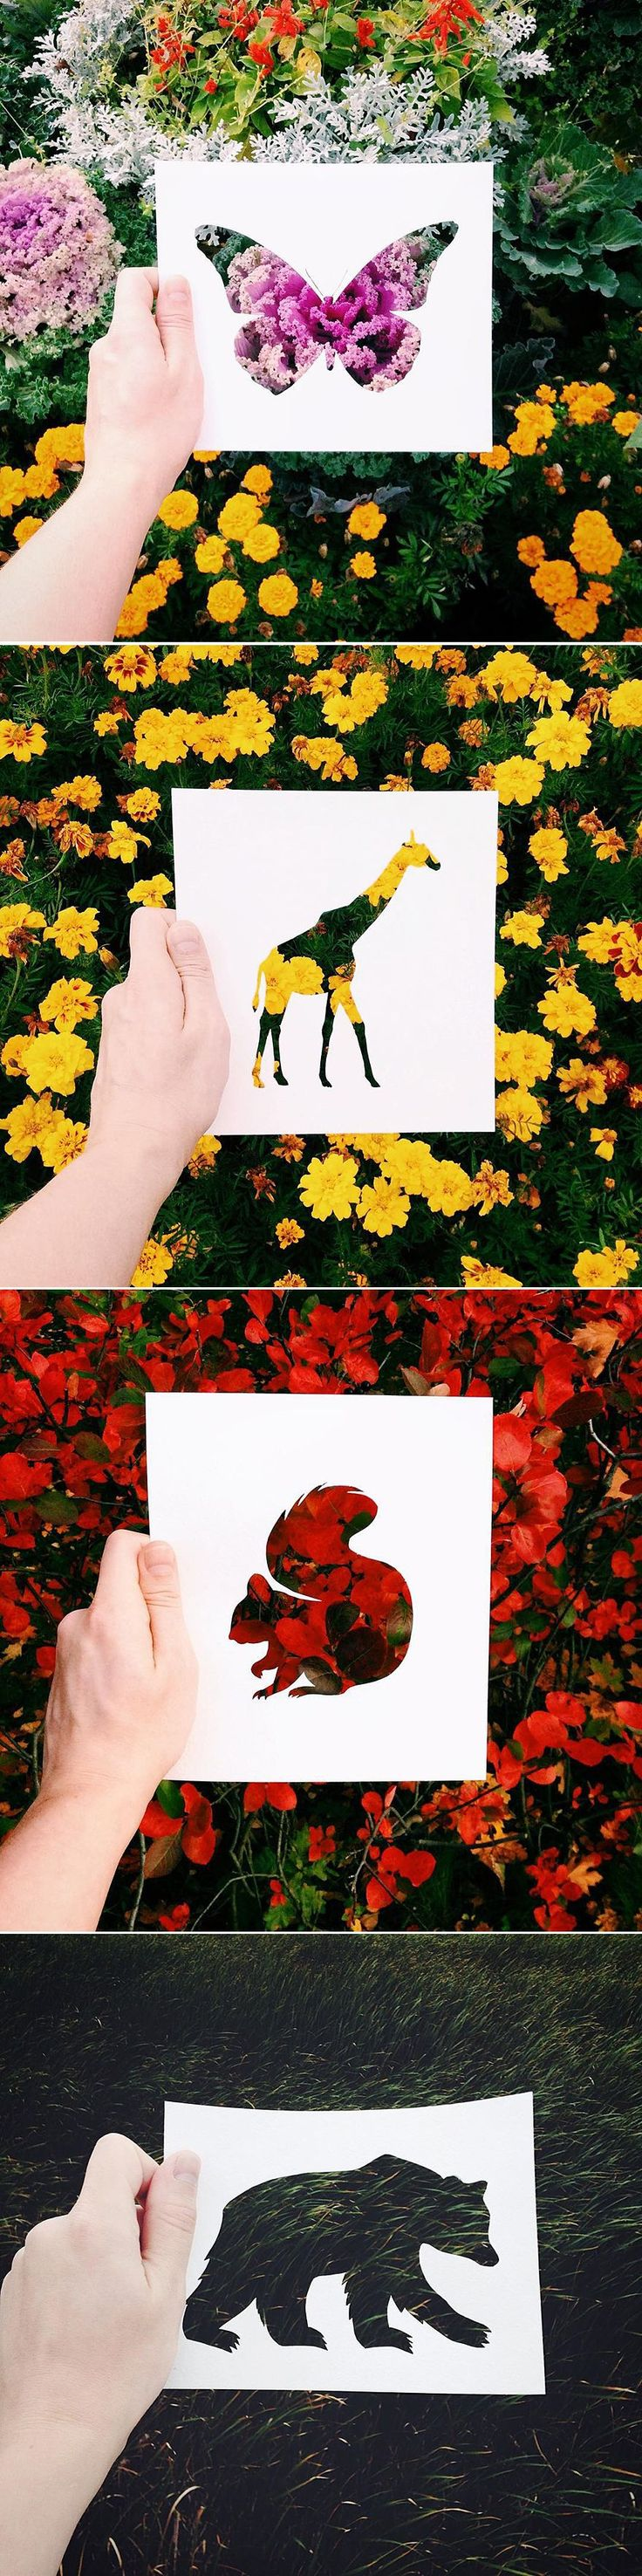 Artist Uses Nature To Color Animal Paper Silhouettes